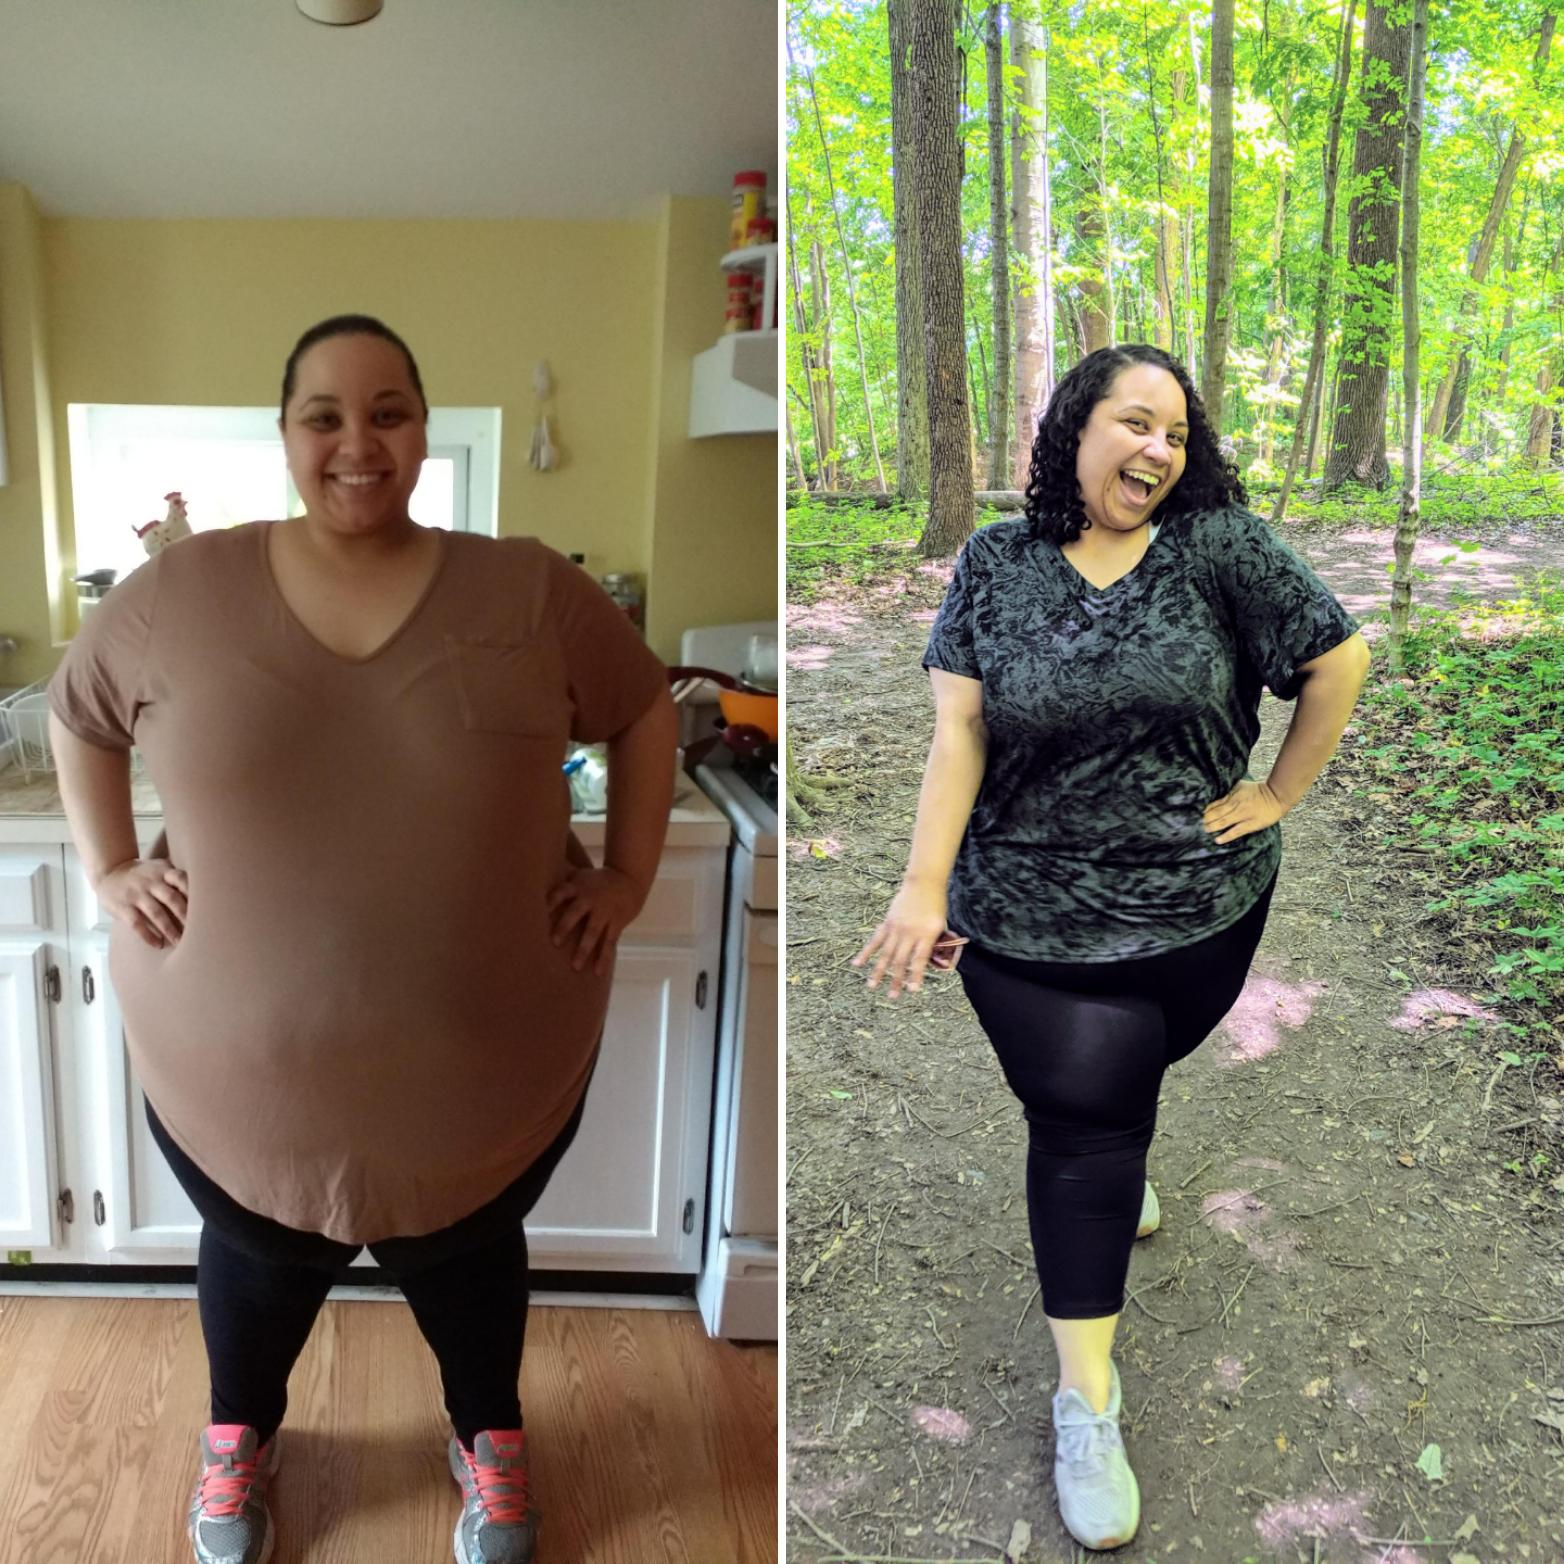 5 feet 3 Female Before and After 306 lbs Weight Loss 443 lbs to 137 lbs